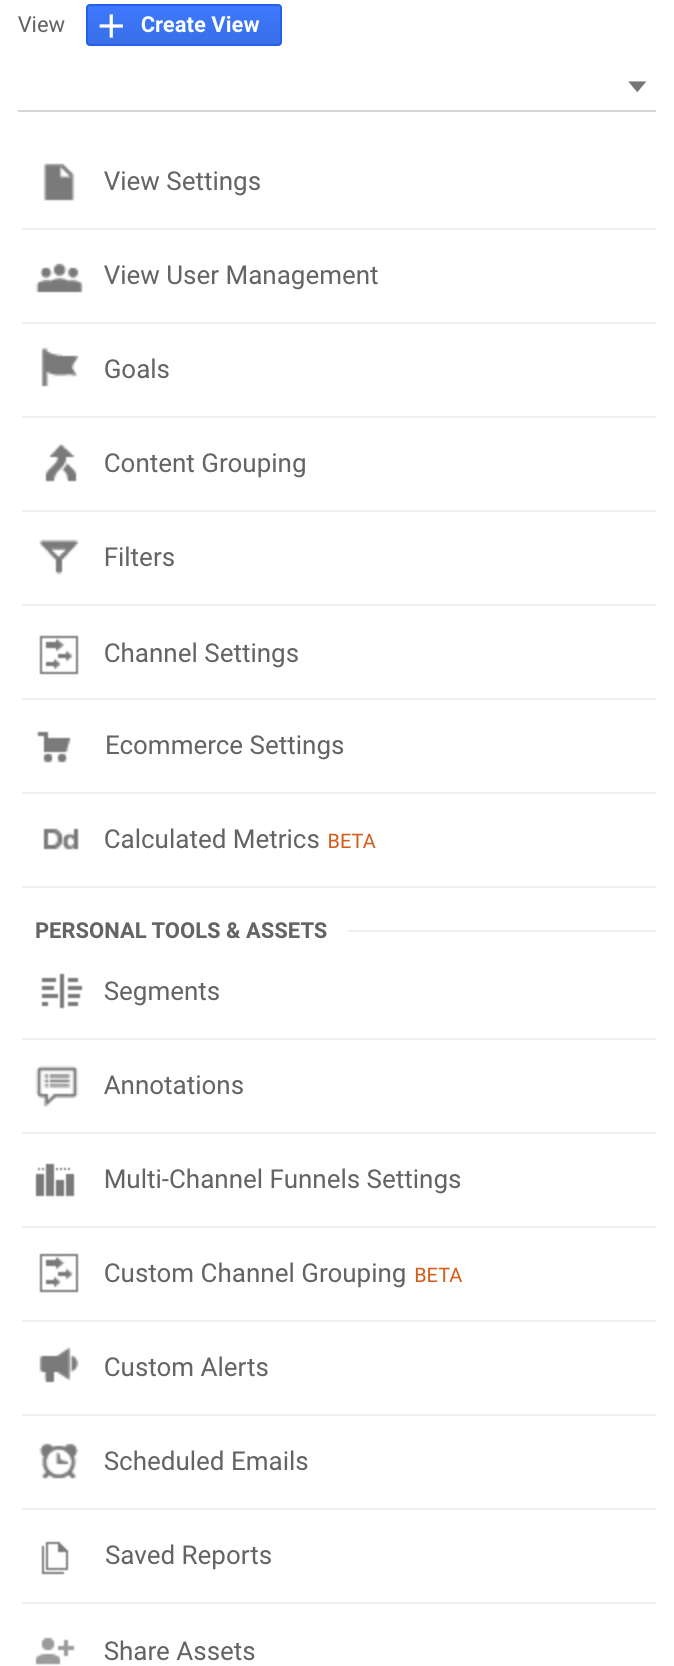 View - Google Analytics